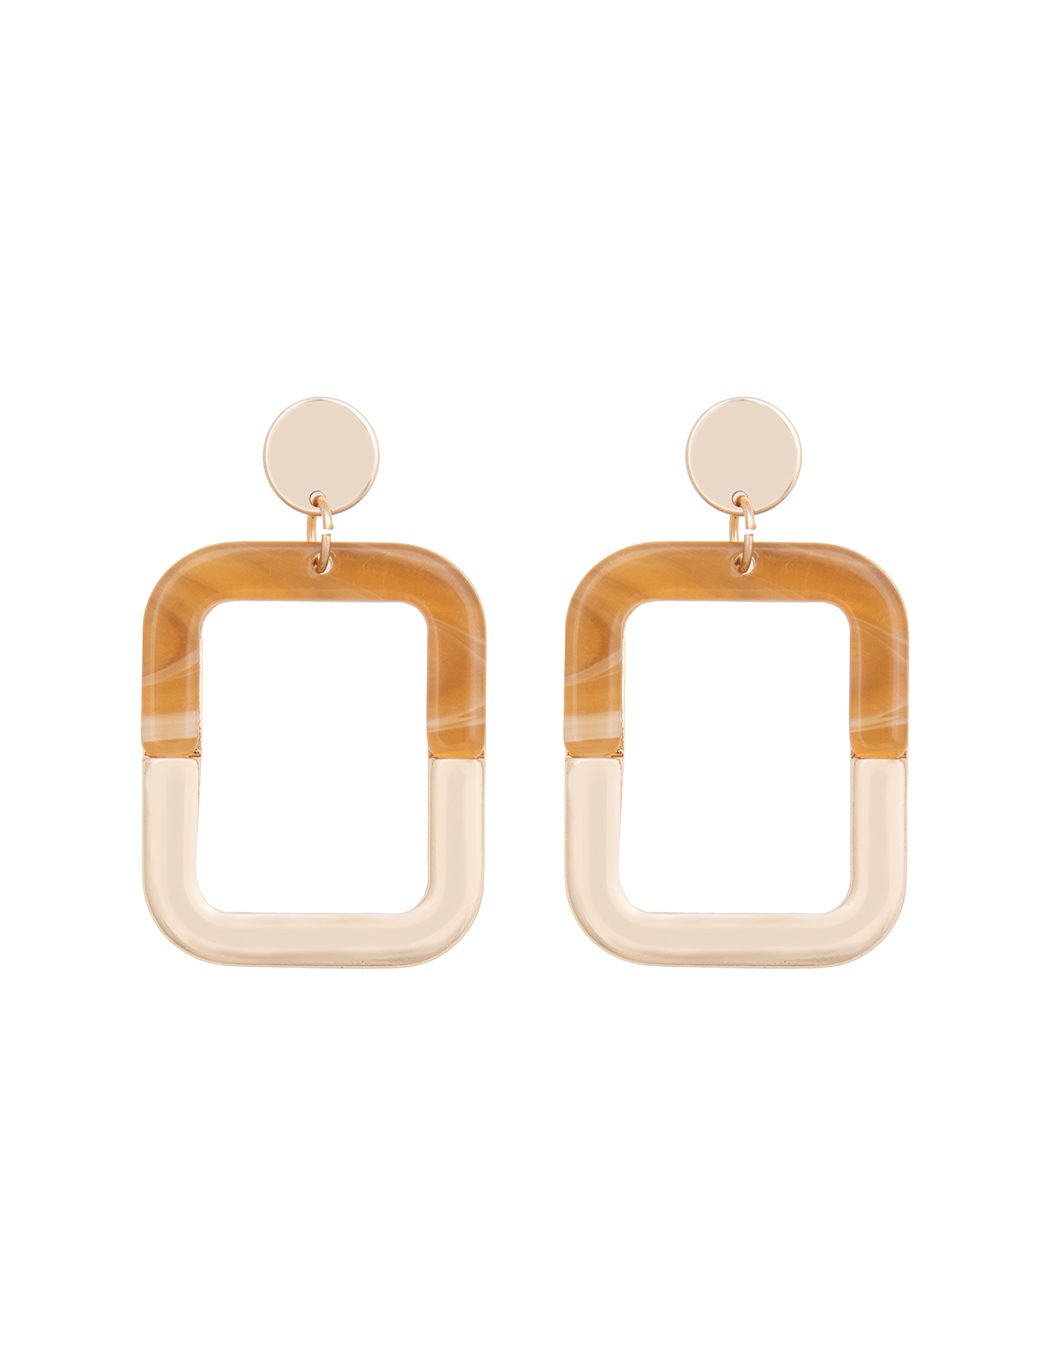 Rounded Rectangle Resin and Gold Earrings